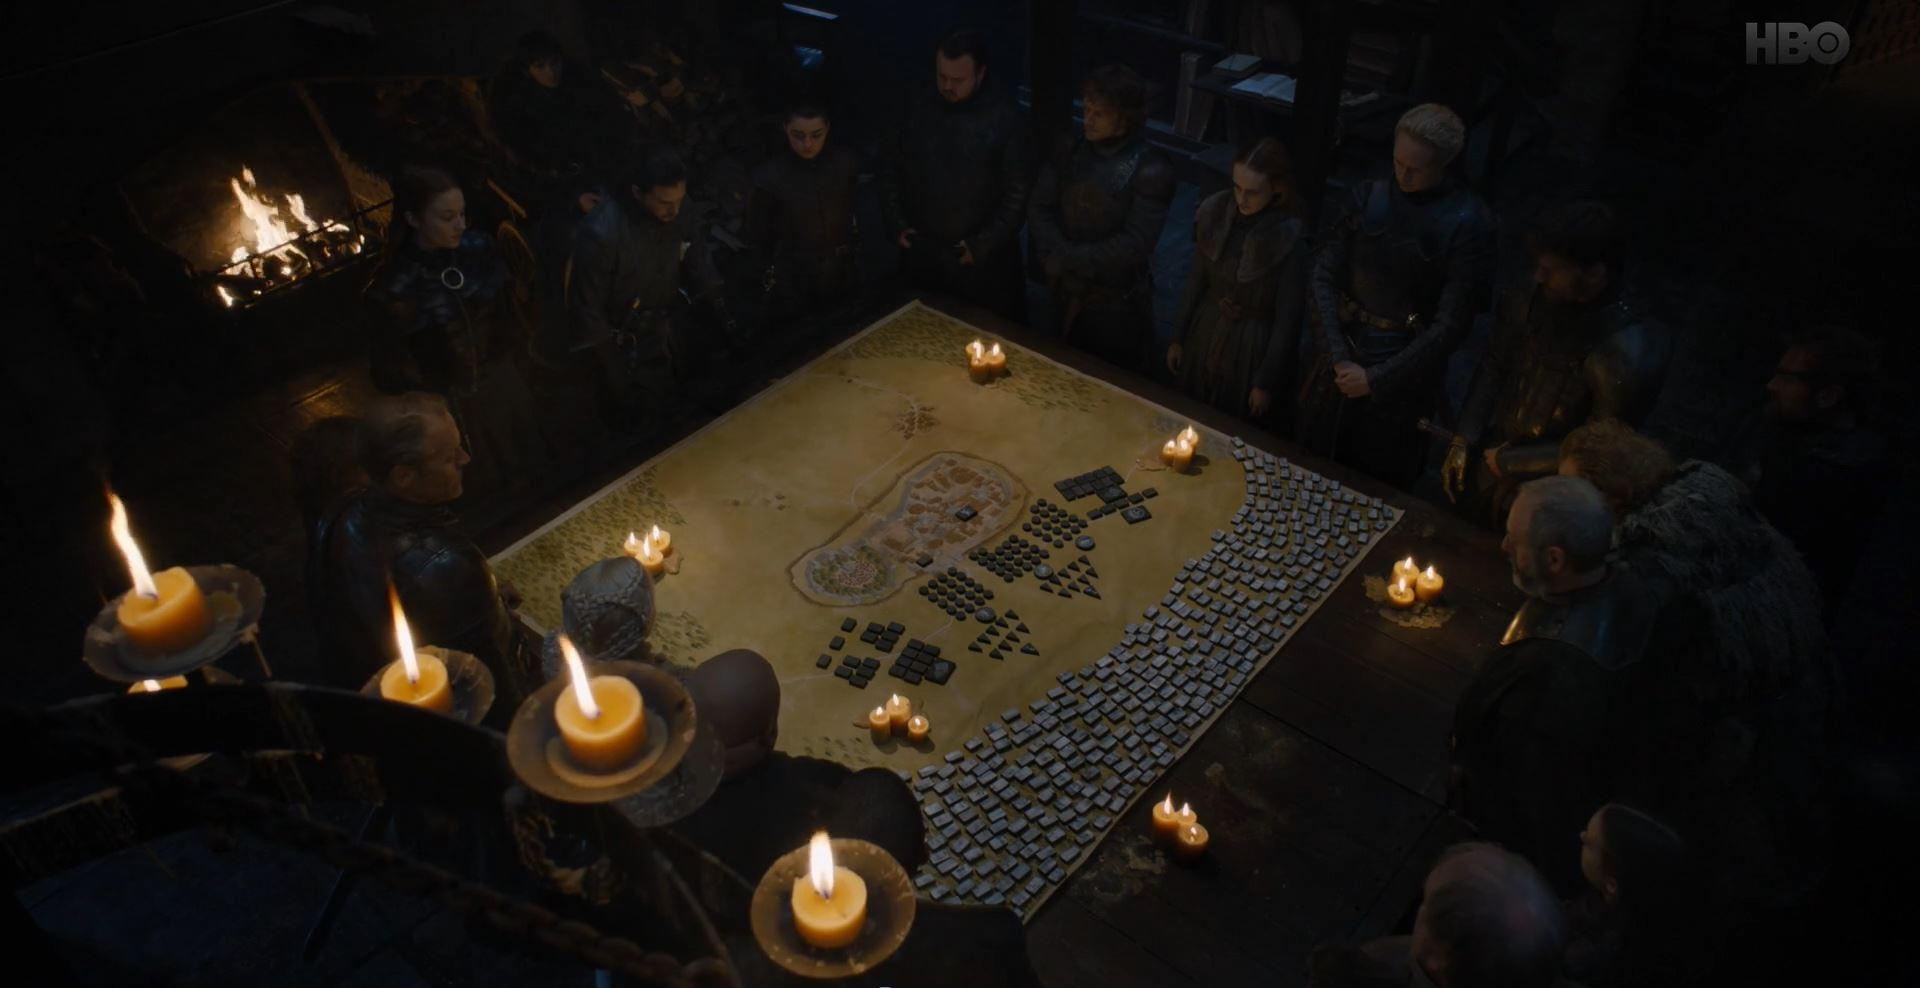 Game of Thrones S08E02 A Knight of the Seven Kingdoms Review - The war council